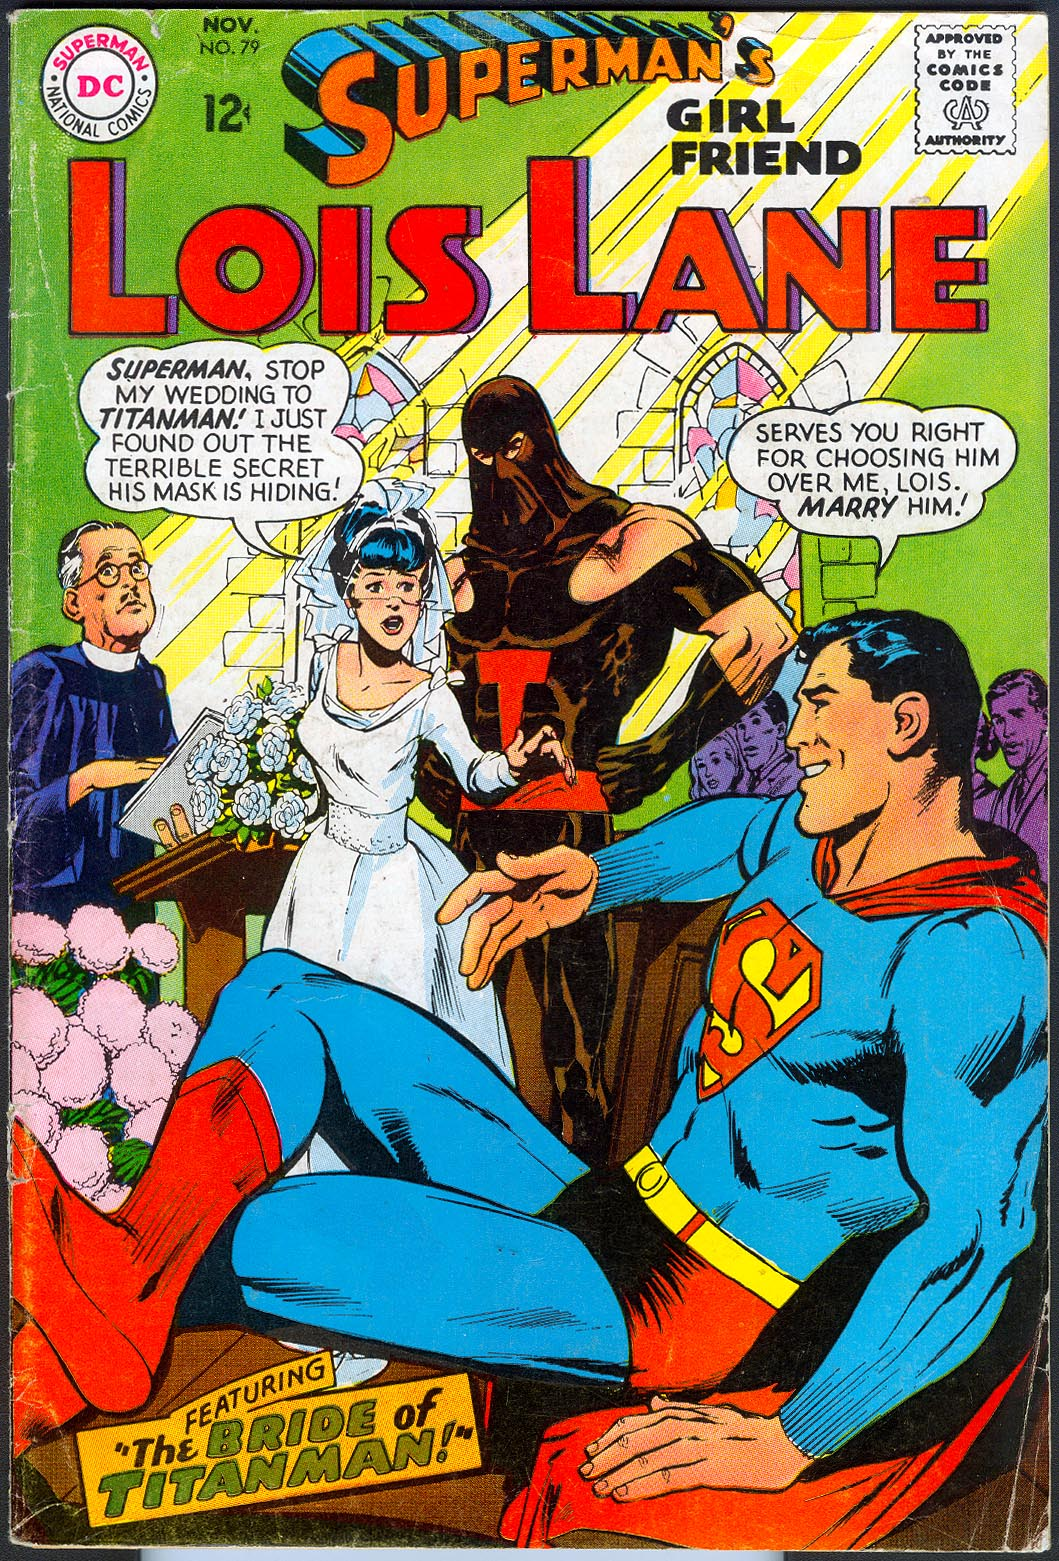 Supermans Girlfriend Lois Lane 79 -F